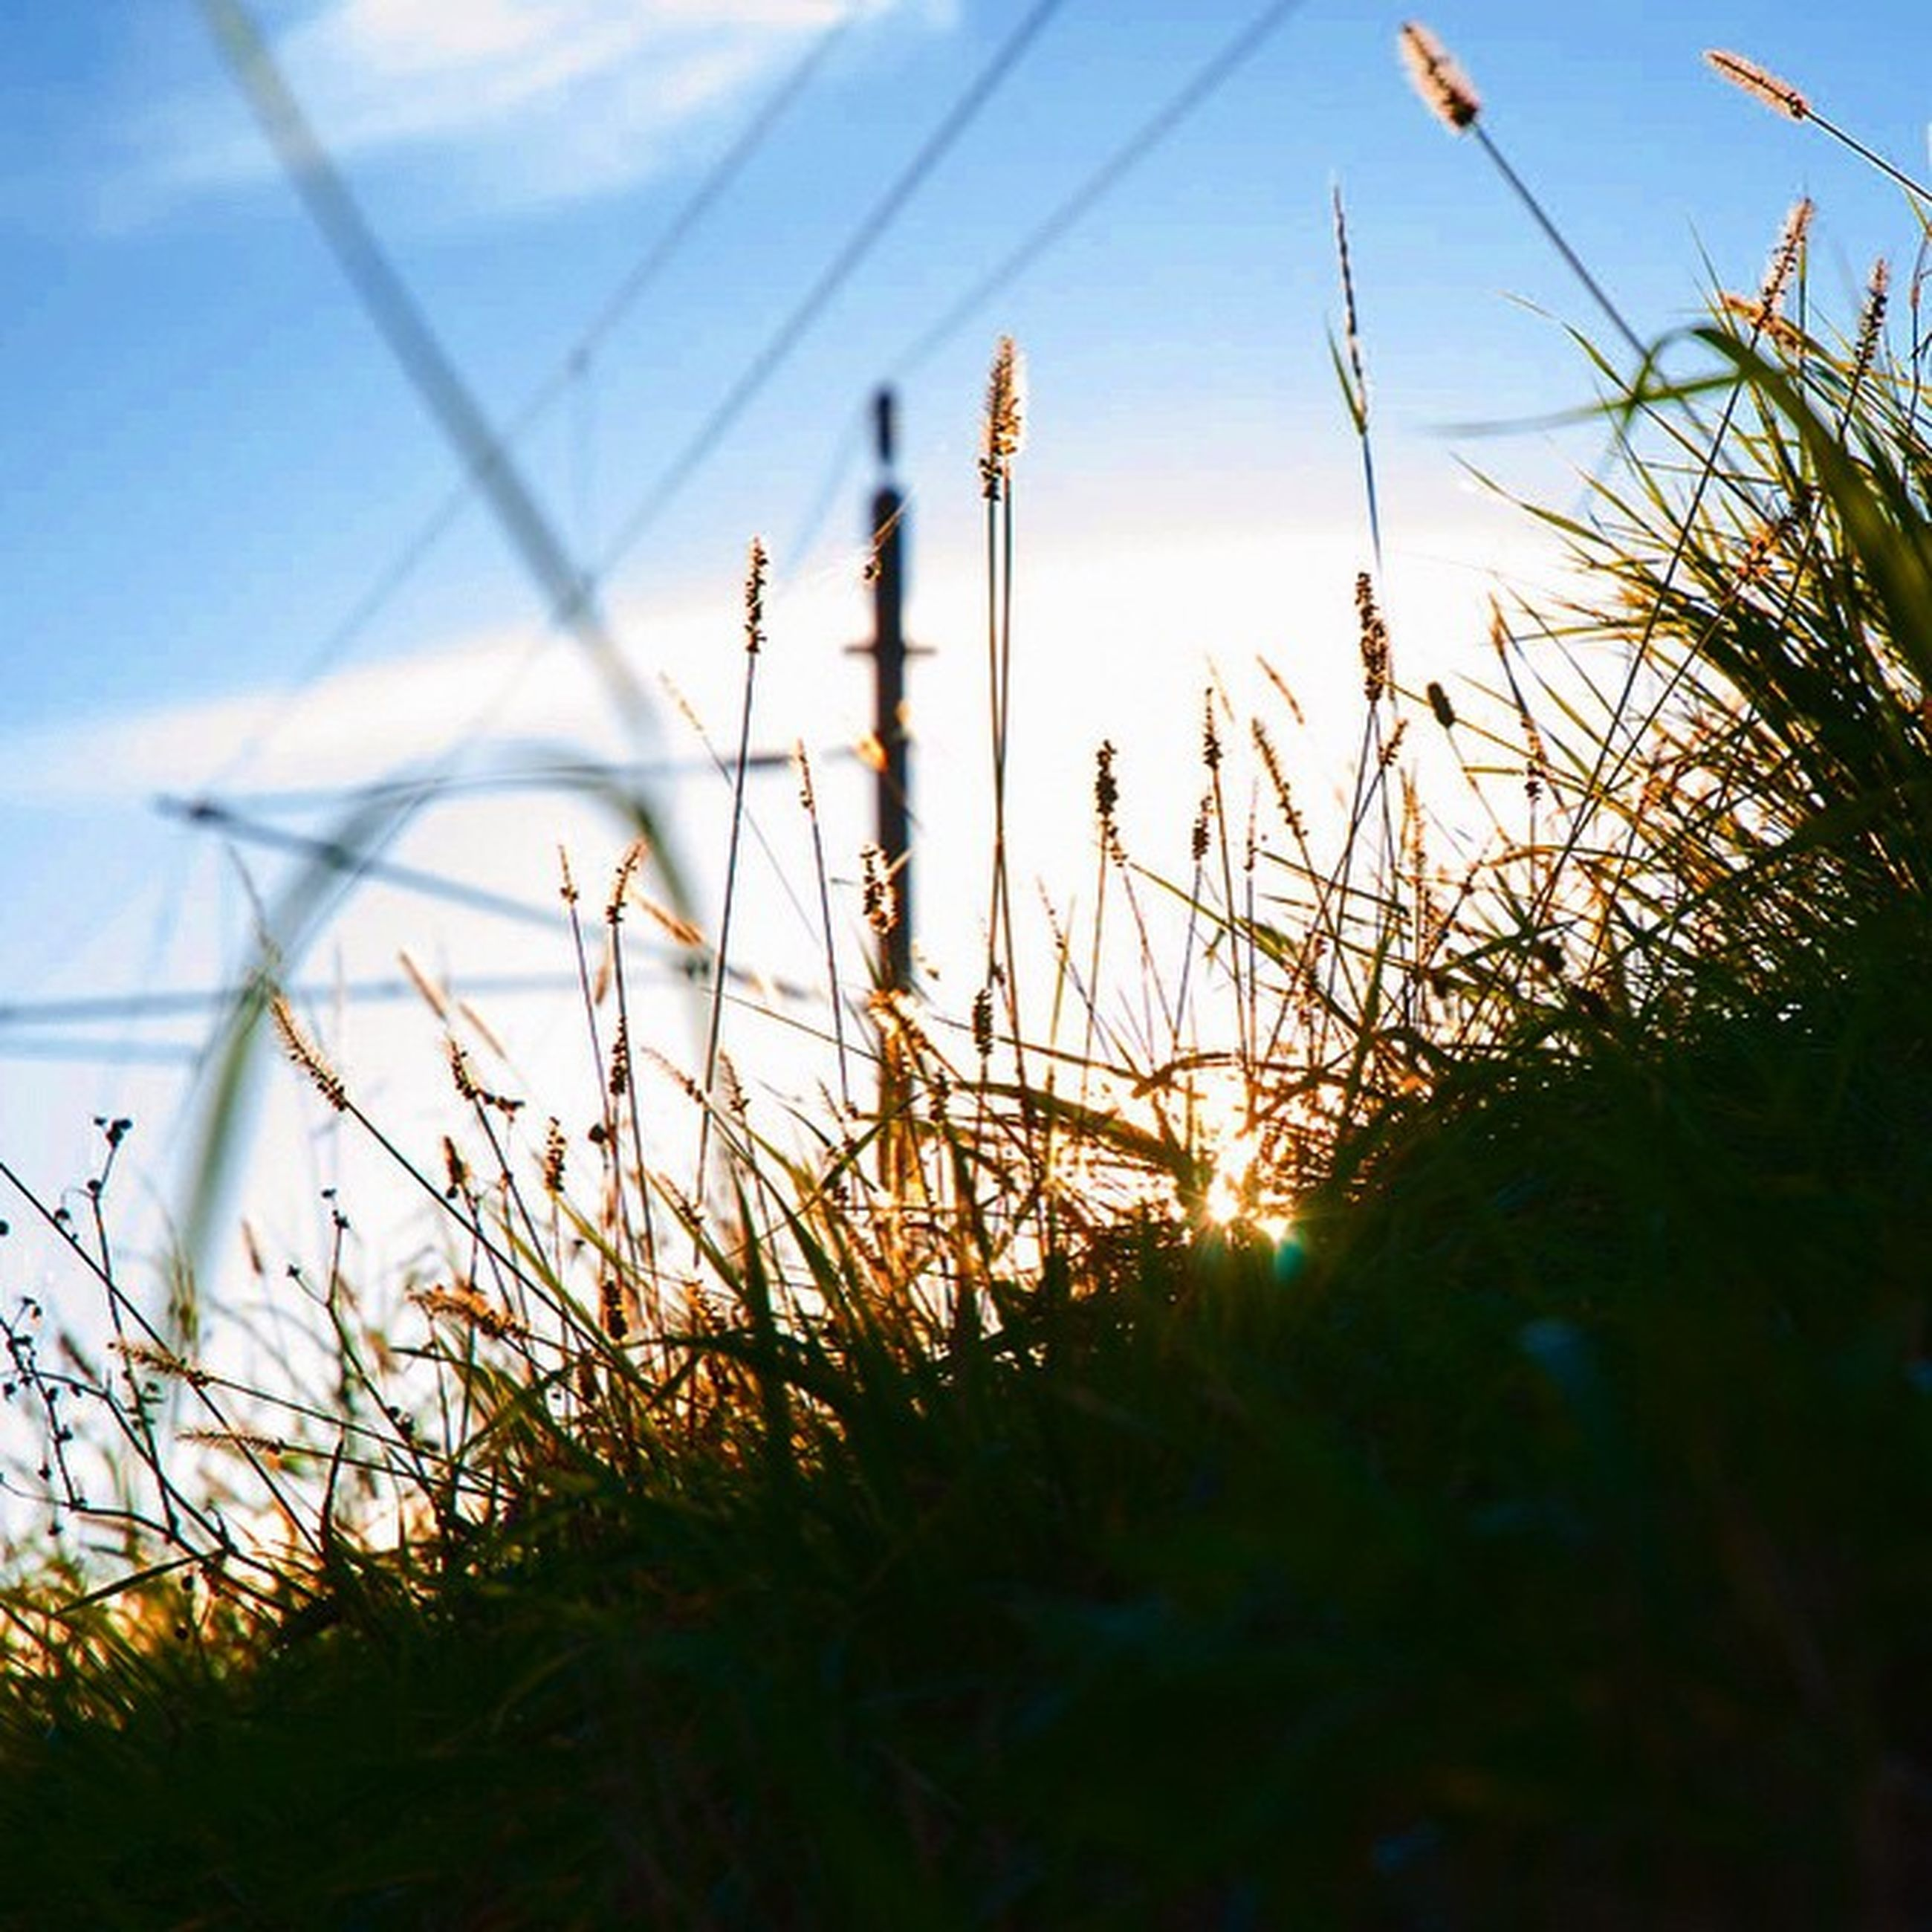 sunset, growth, plant, grass, tranquility, sky, nature, beauty in nature, sun, field, tranquil scene, scenics, sunlight, landscape, silhouette, stem, close-up, idyllic, outdoors, no people